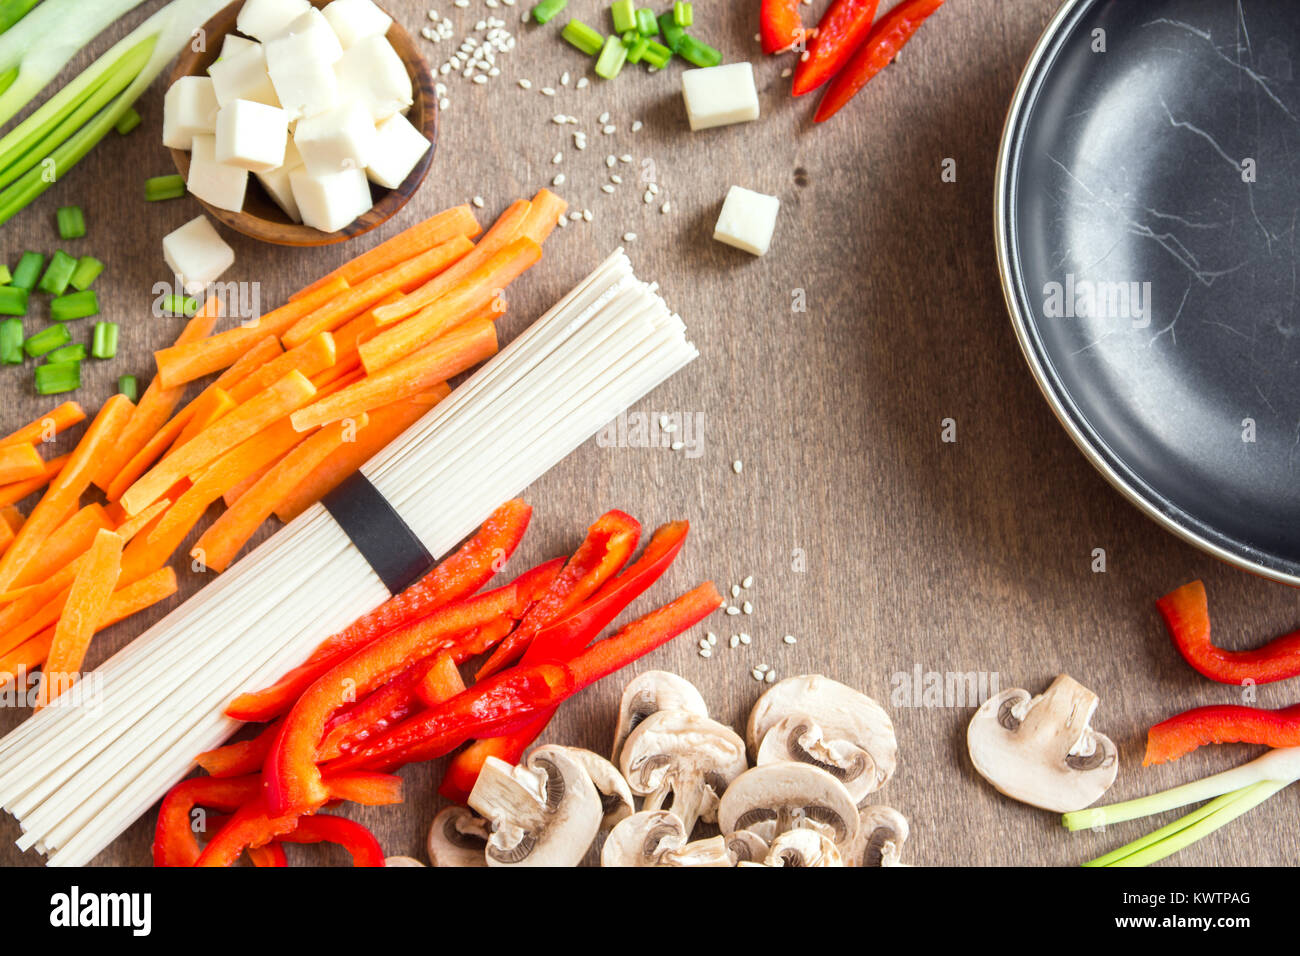 Vegetarian vegan asian food ingredients for stir fry with tofu, noodles, mushrooms and vegetables over wooden background Stock Photo